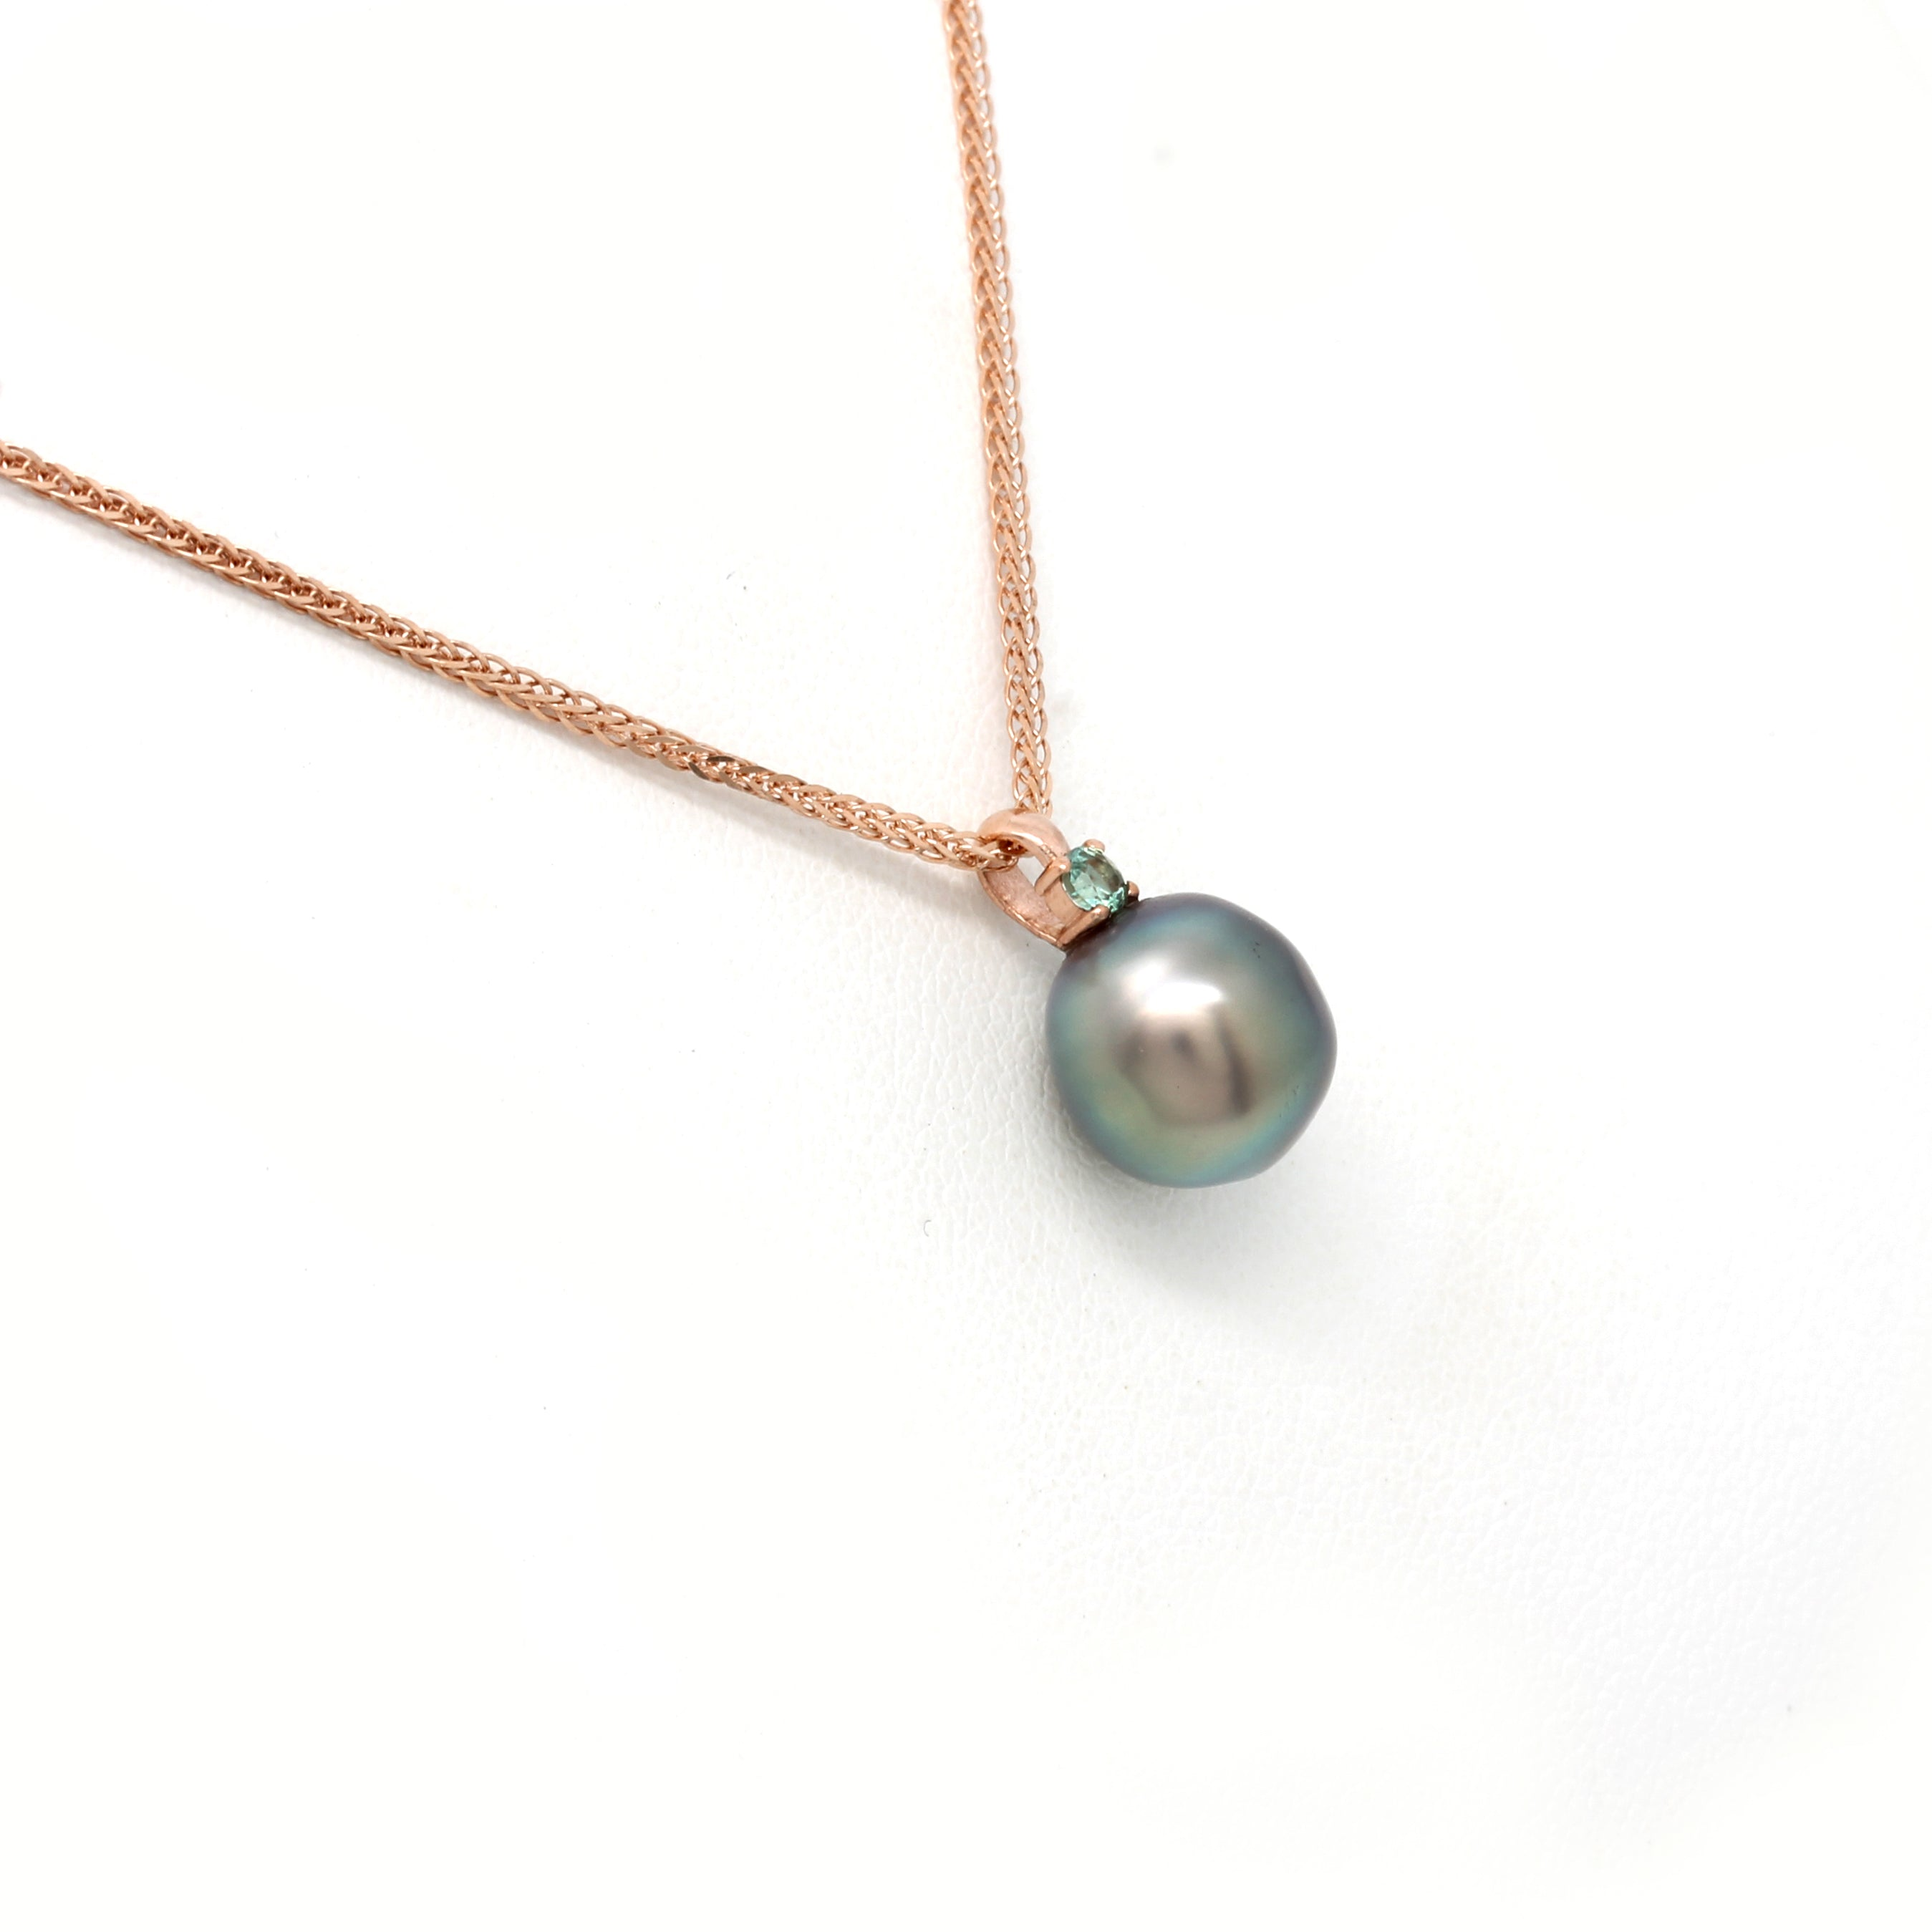 14K Rose Gold Chain with Tourmaline and a Sea of Cortez Pearl